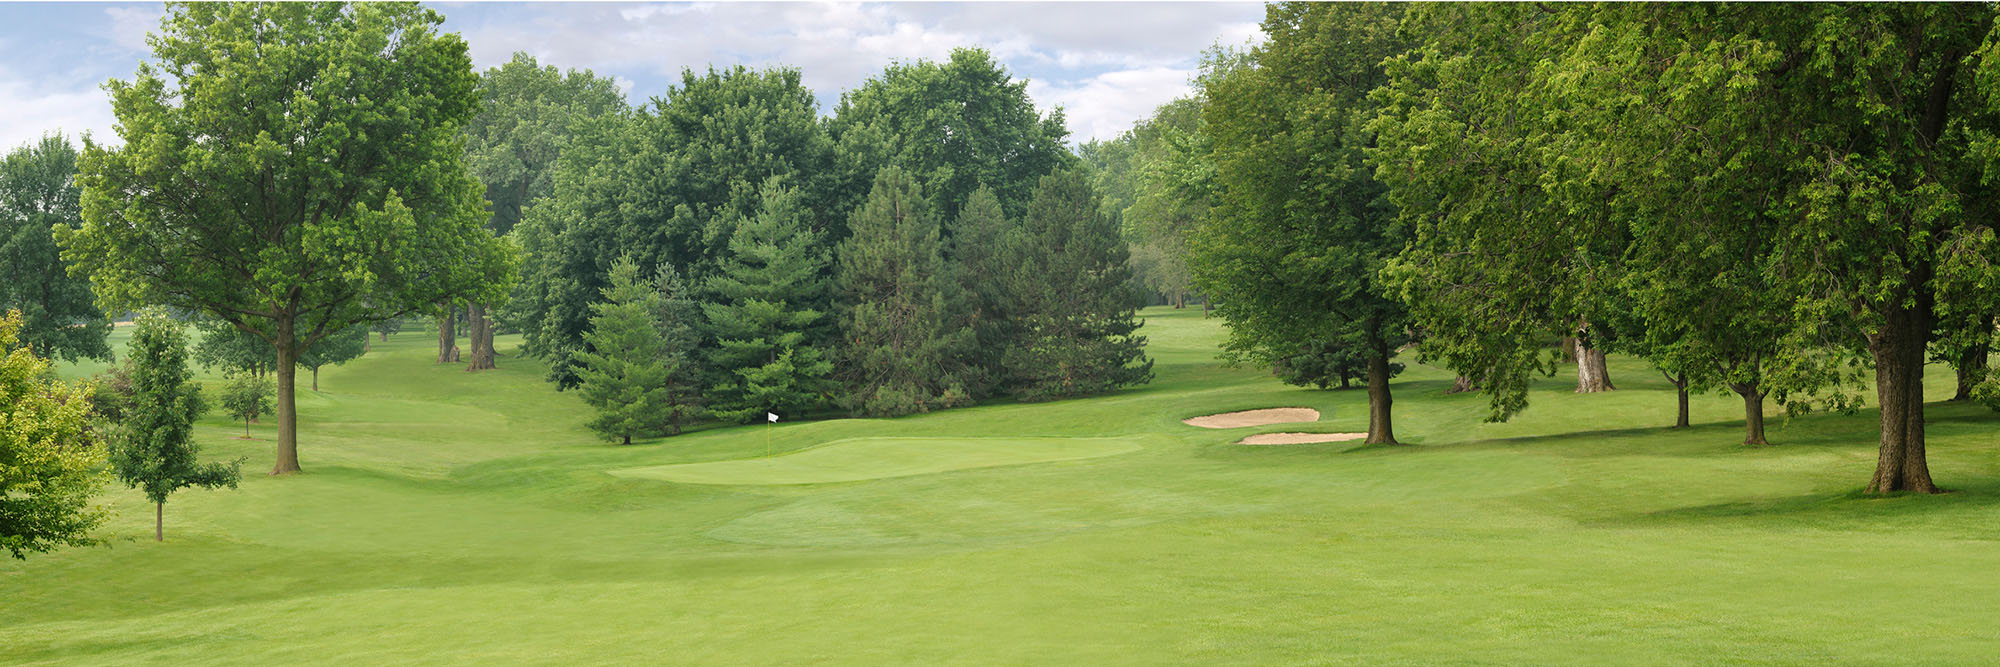 Golf Course Image - Hillcrest Country Club No. 8